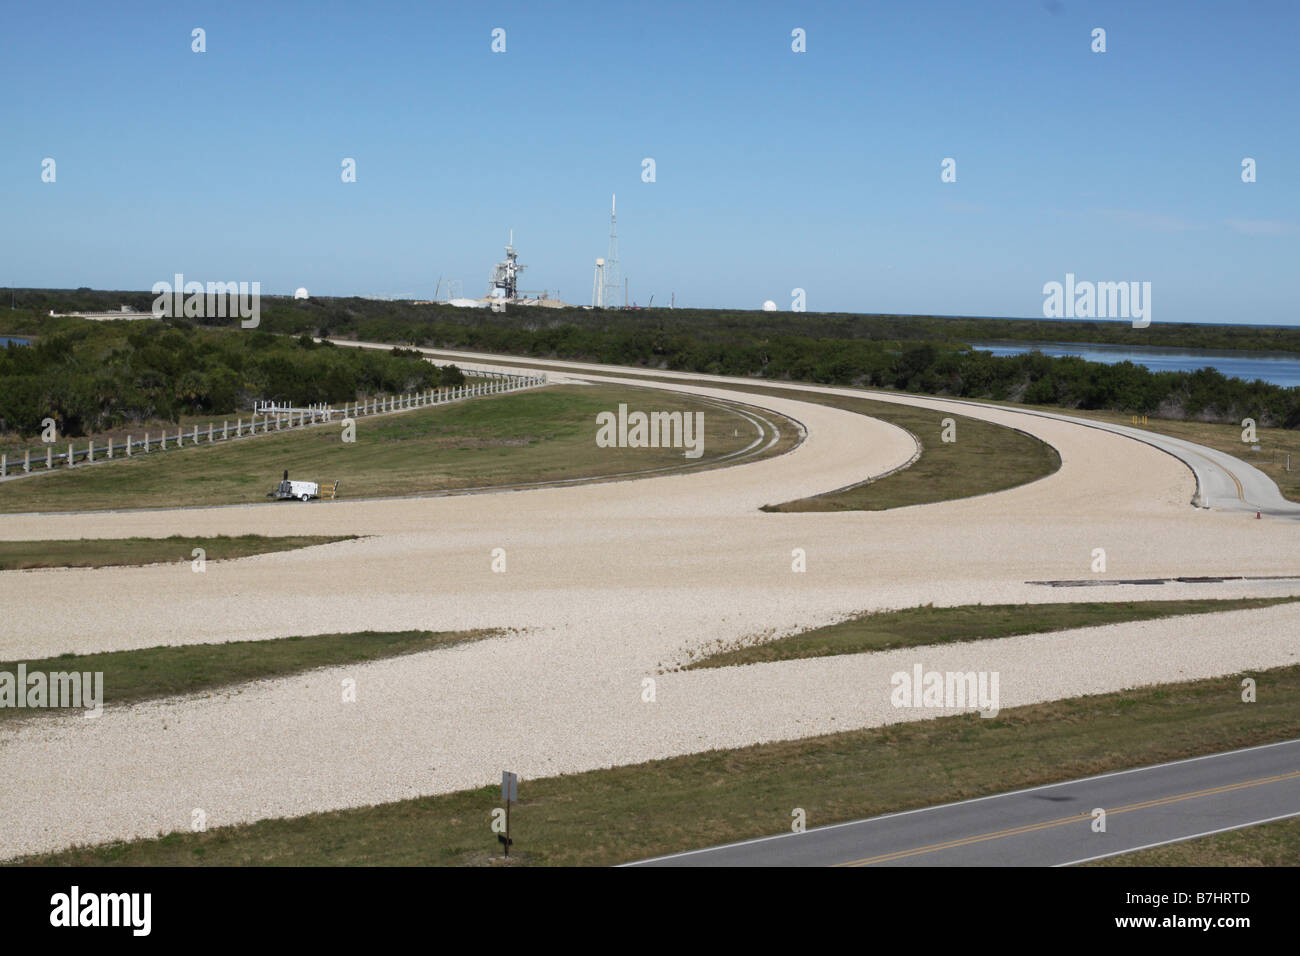 NASA Launch Pad 39B road Kennedy Space Center Cape Canaveral - Stock Image